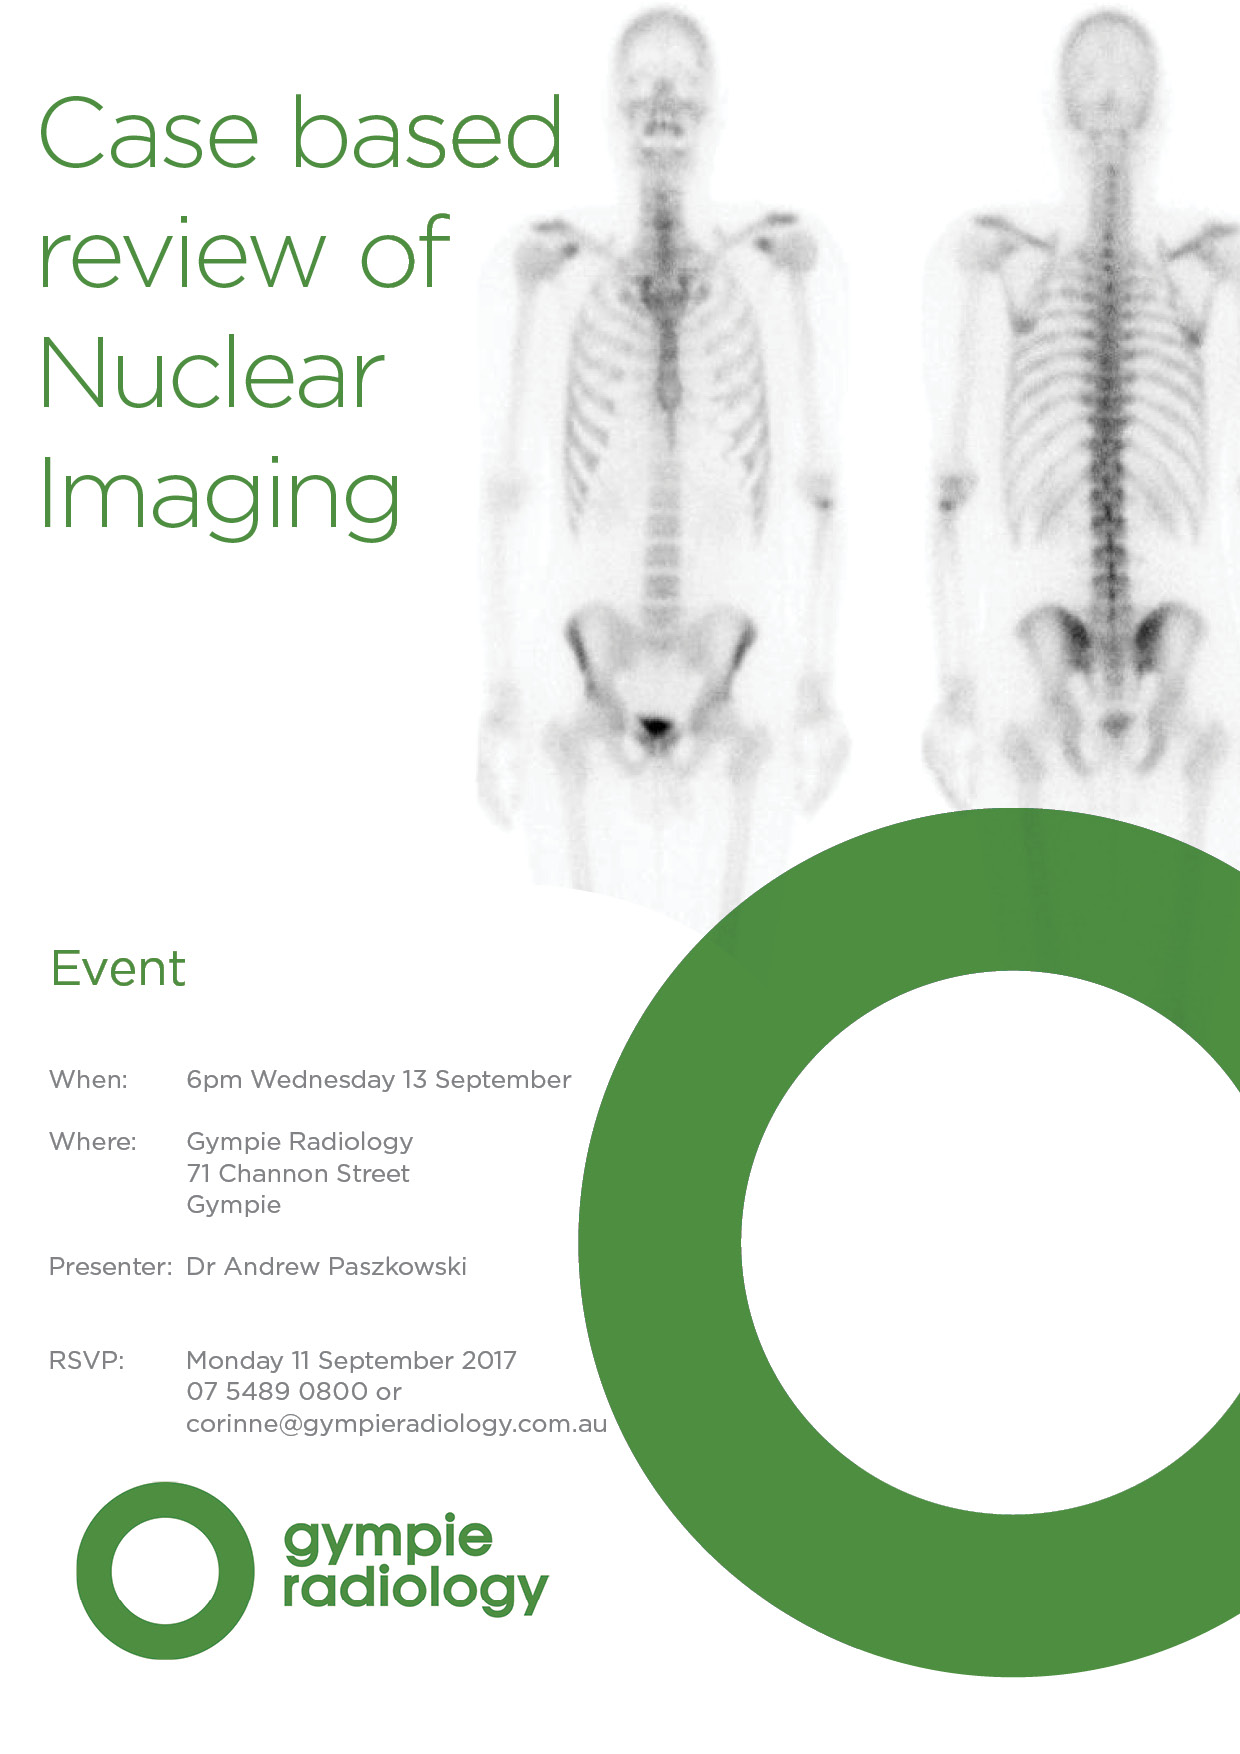 Case based review of Nuclear Imaging